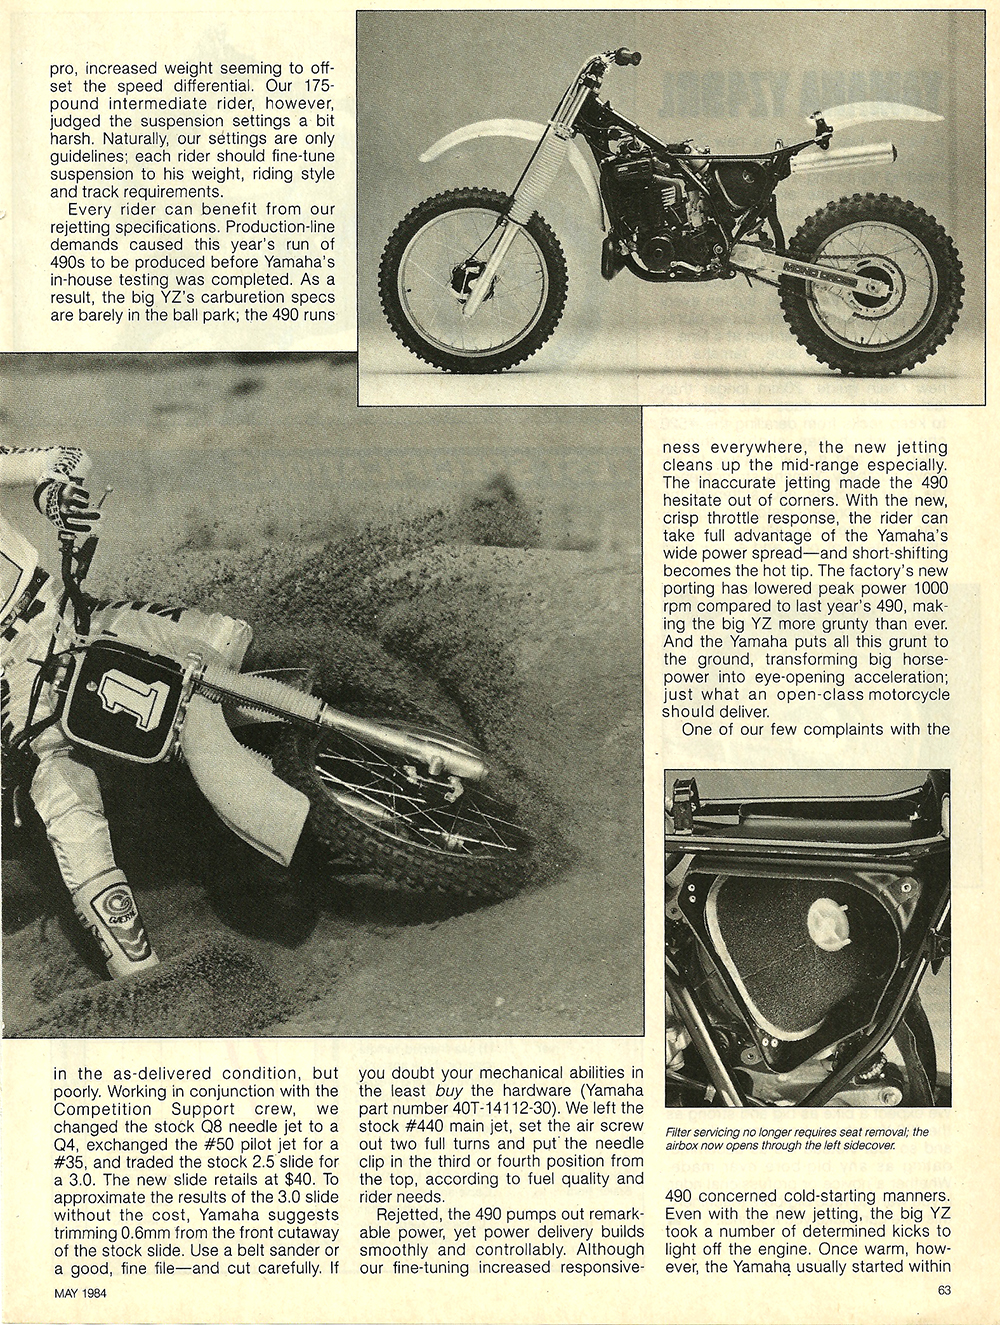 1984 Yamaha YZ490L off road test 6.jpg